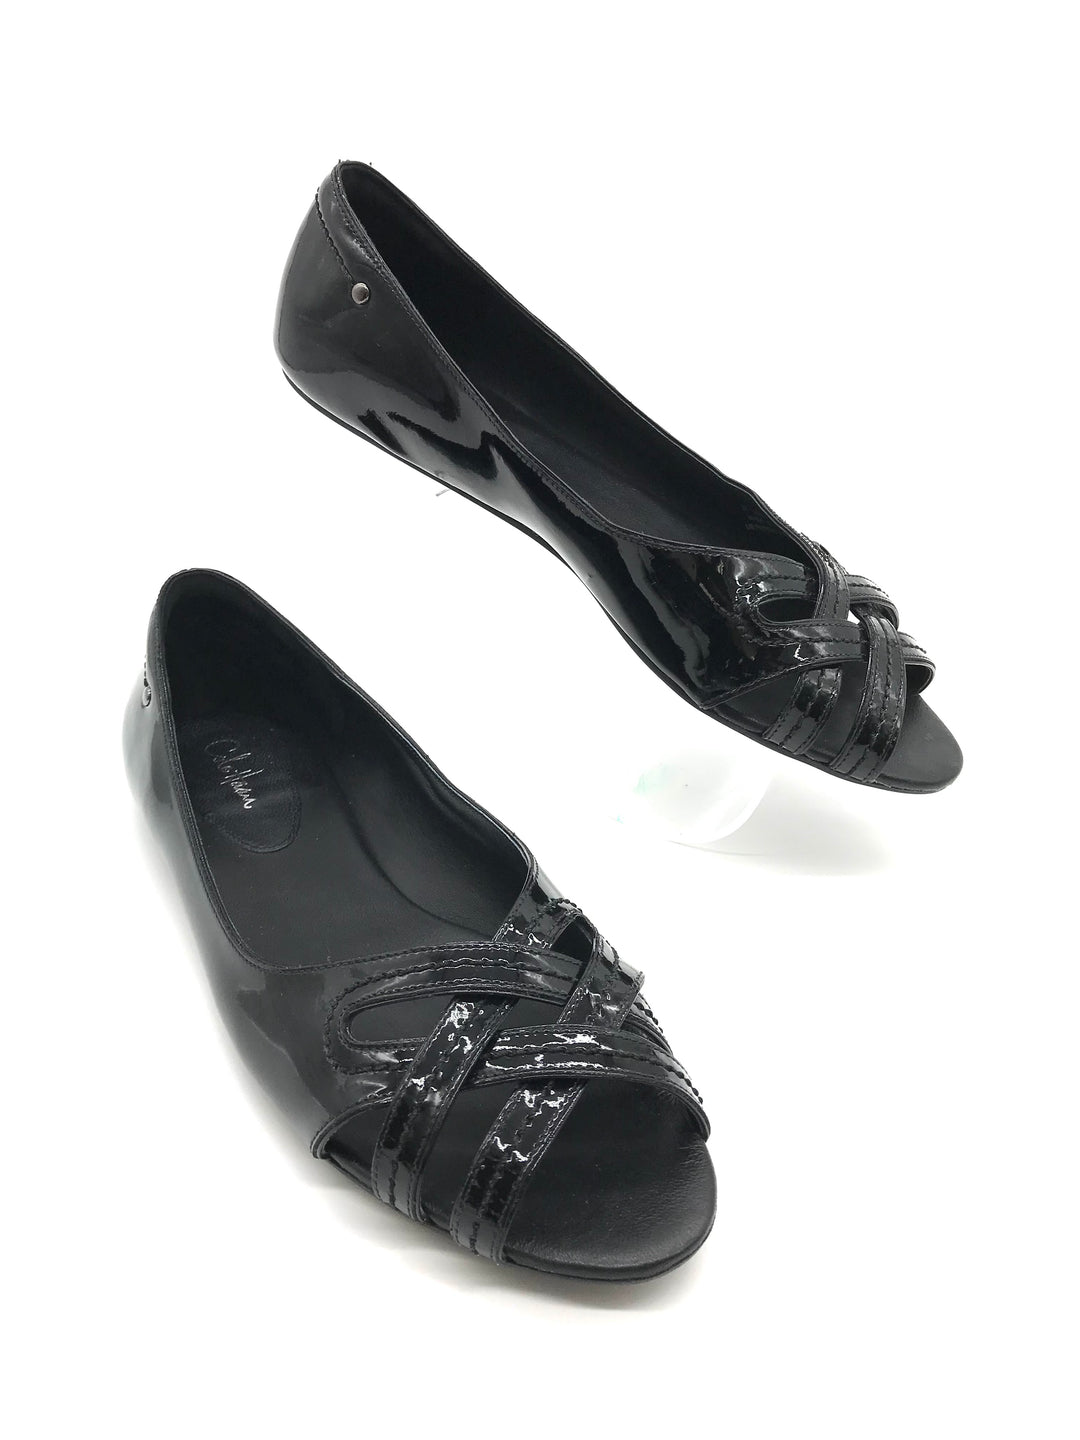 Primary Photo - BRAND: COLE-HAAN <BR>STYLE: SHOES FLATS <BR>COLOR: BLACK <BR>SIZE: 8 <BR>SKU: 262-26275-69105<BR>AS IS